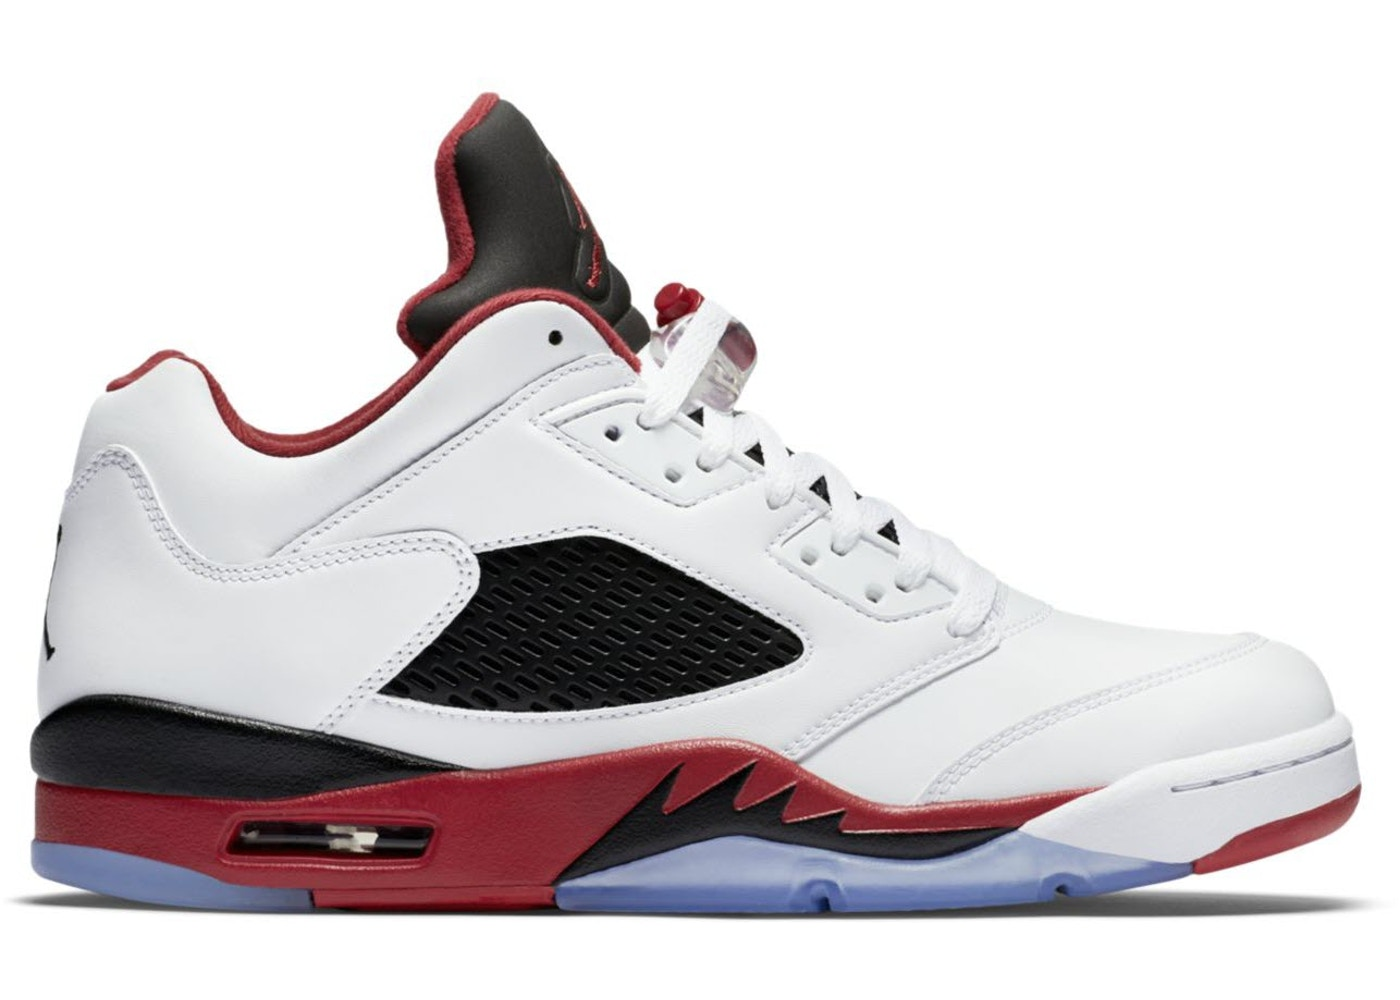 a2f921b0a60e Jordan 5 Retro Low Fire Red - 819171-101